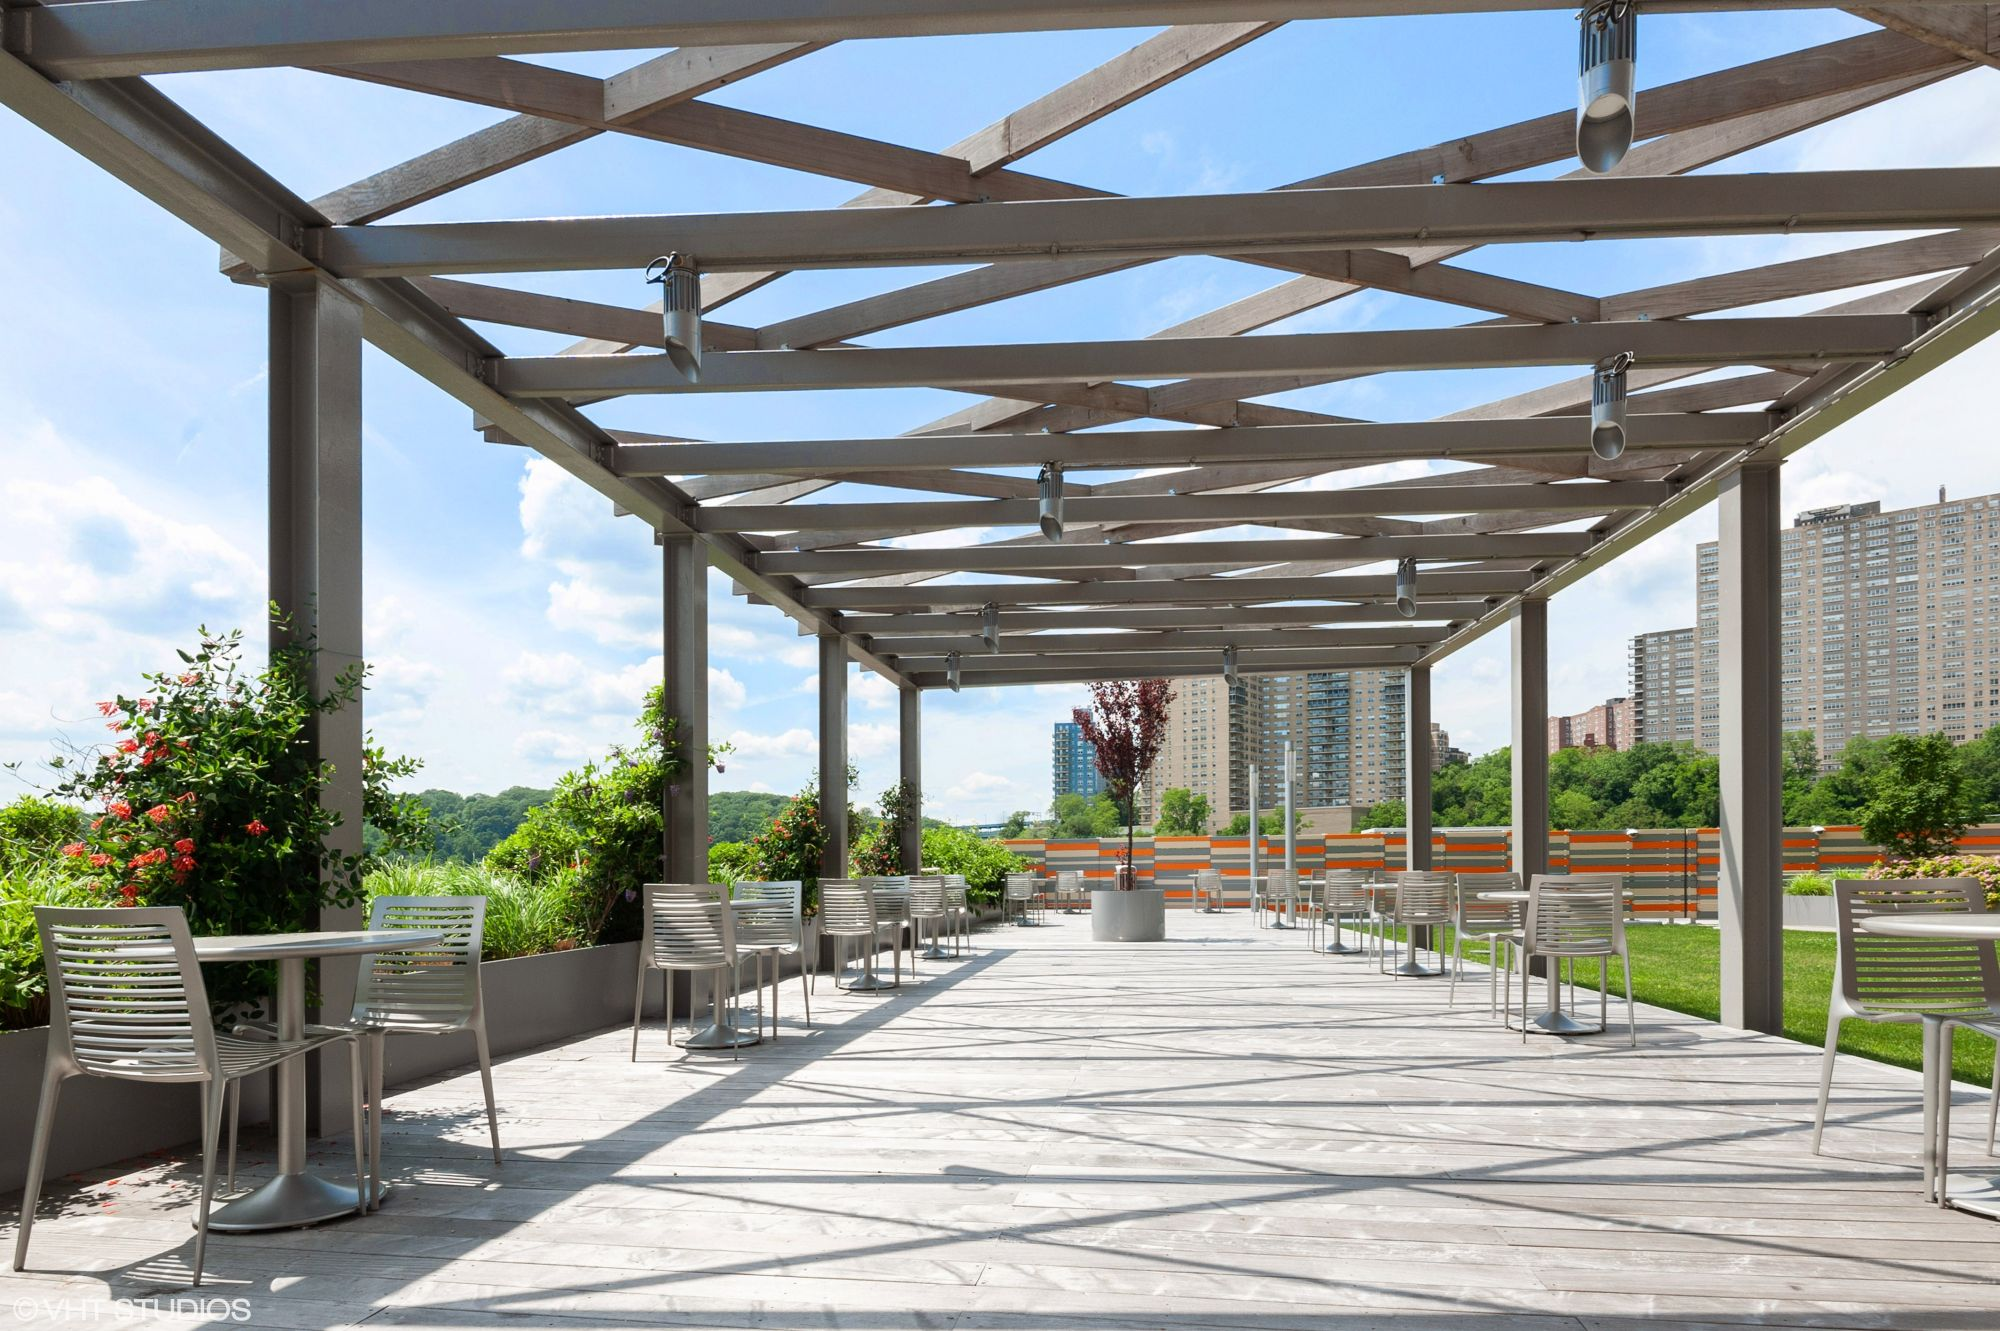 The Landscaped Garden Terrace at The Promenade, 150 west 225th street, is Furnished with modern tables & chairs under a pergola.